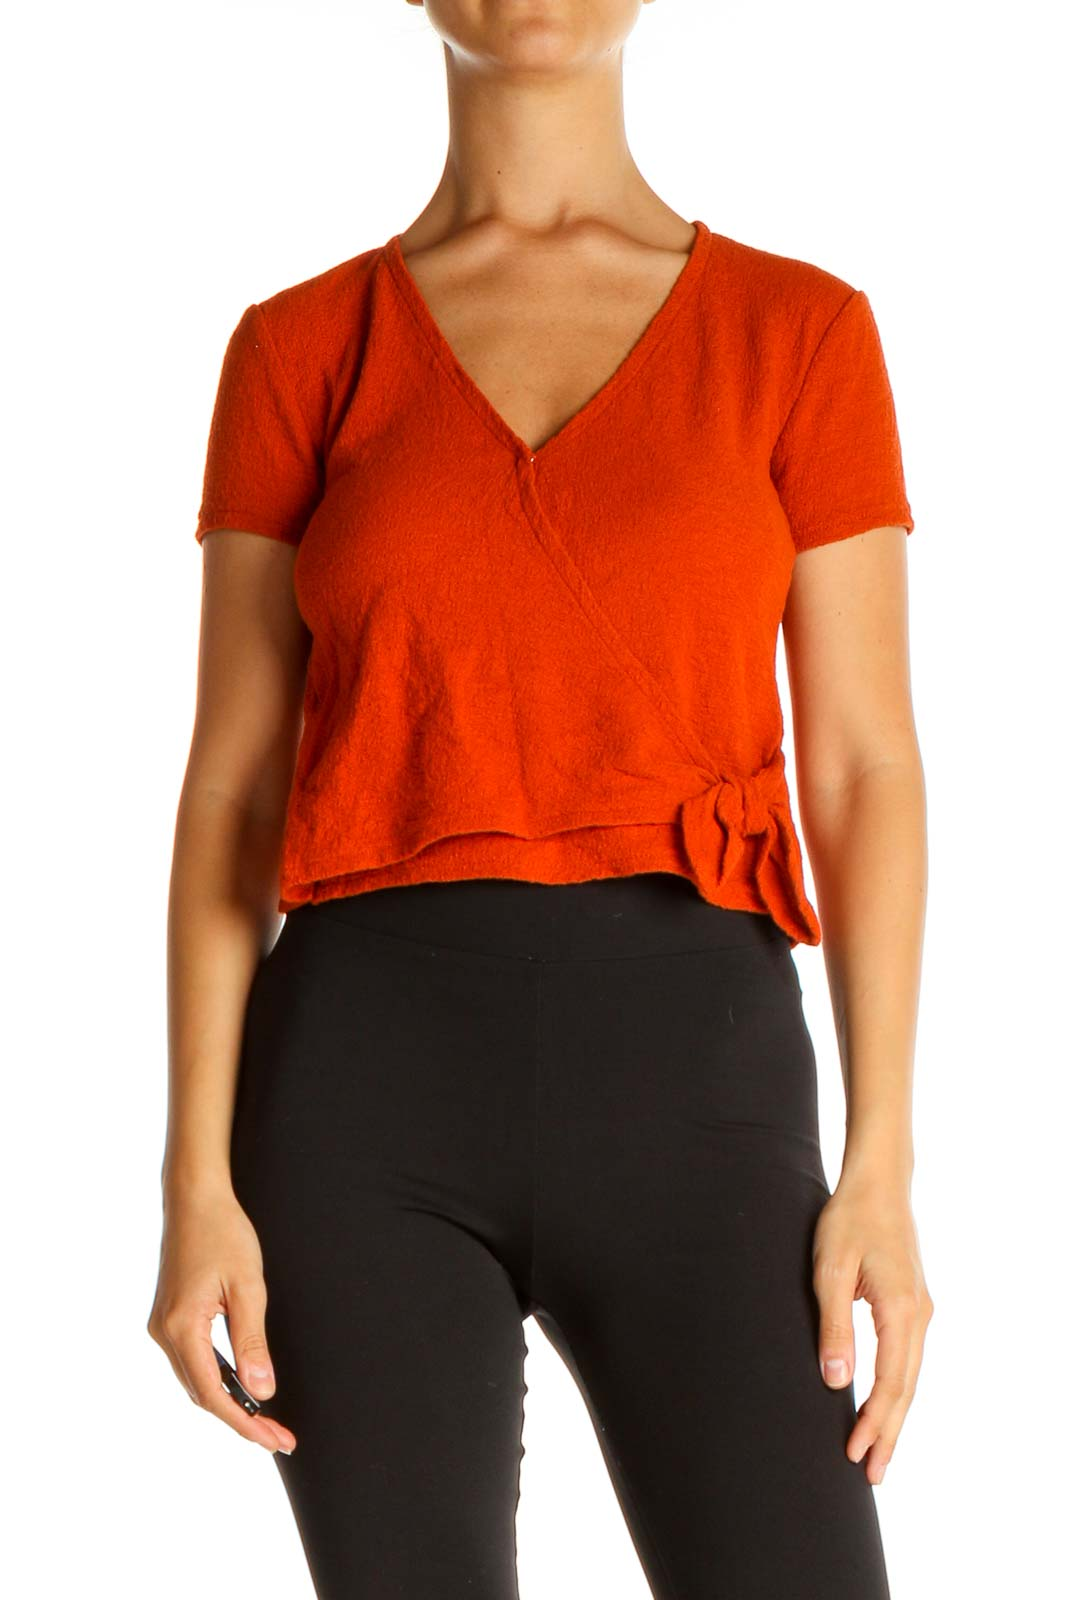 Orange Solid Casual T-Shirt Front